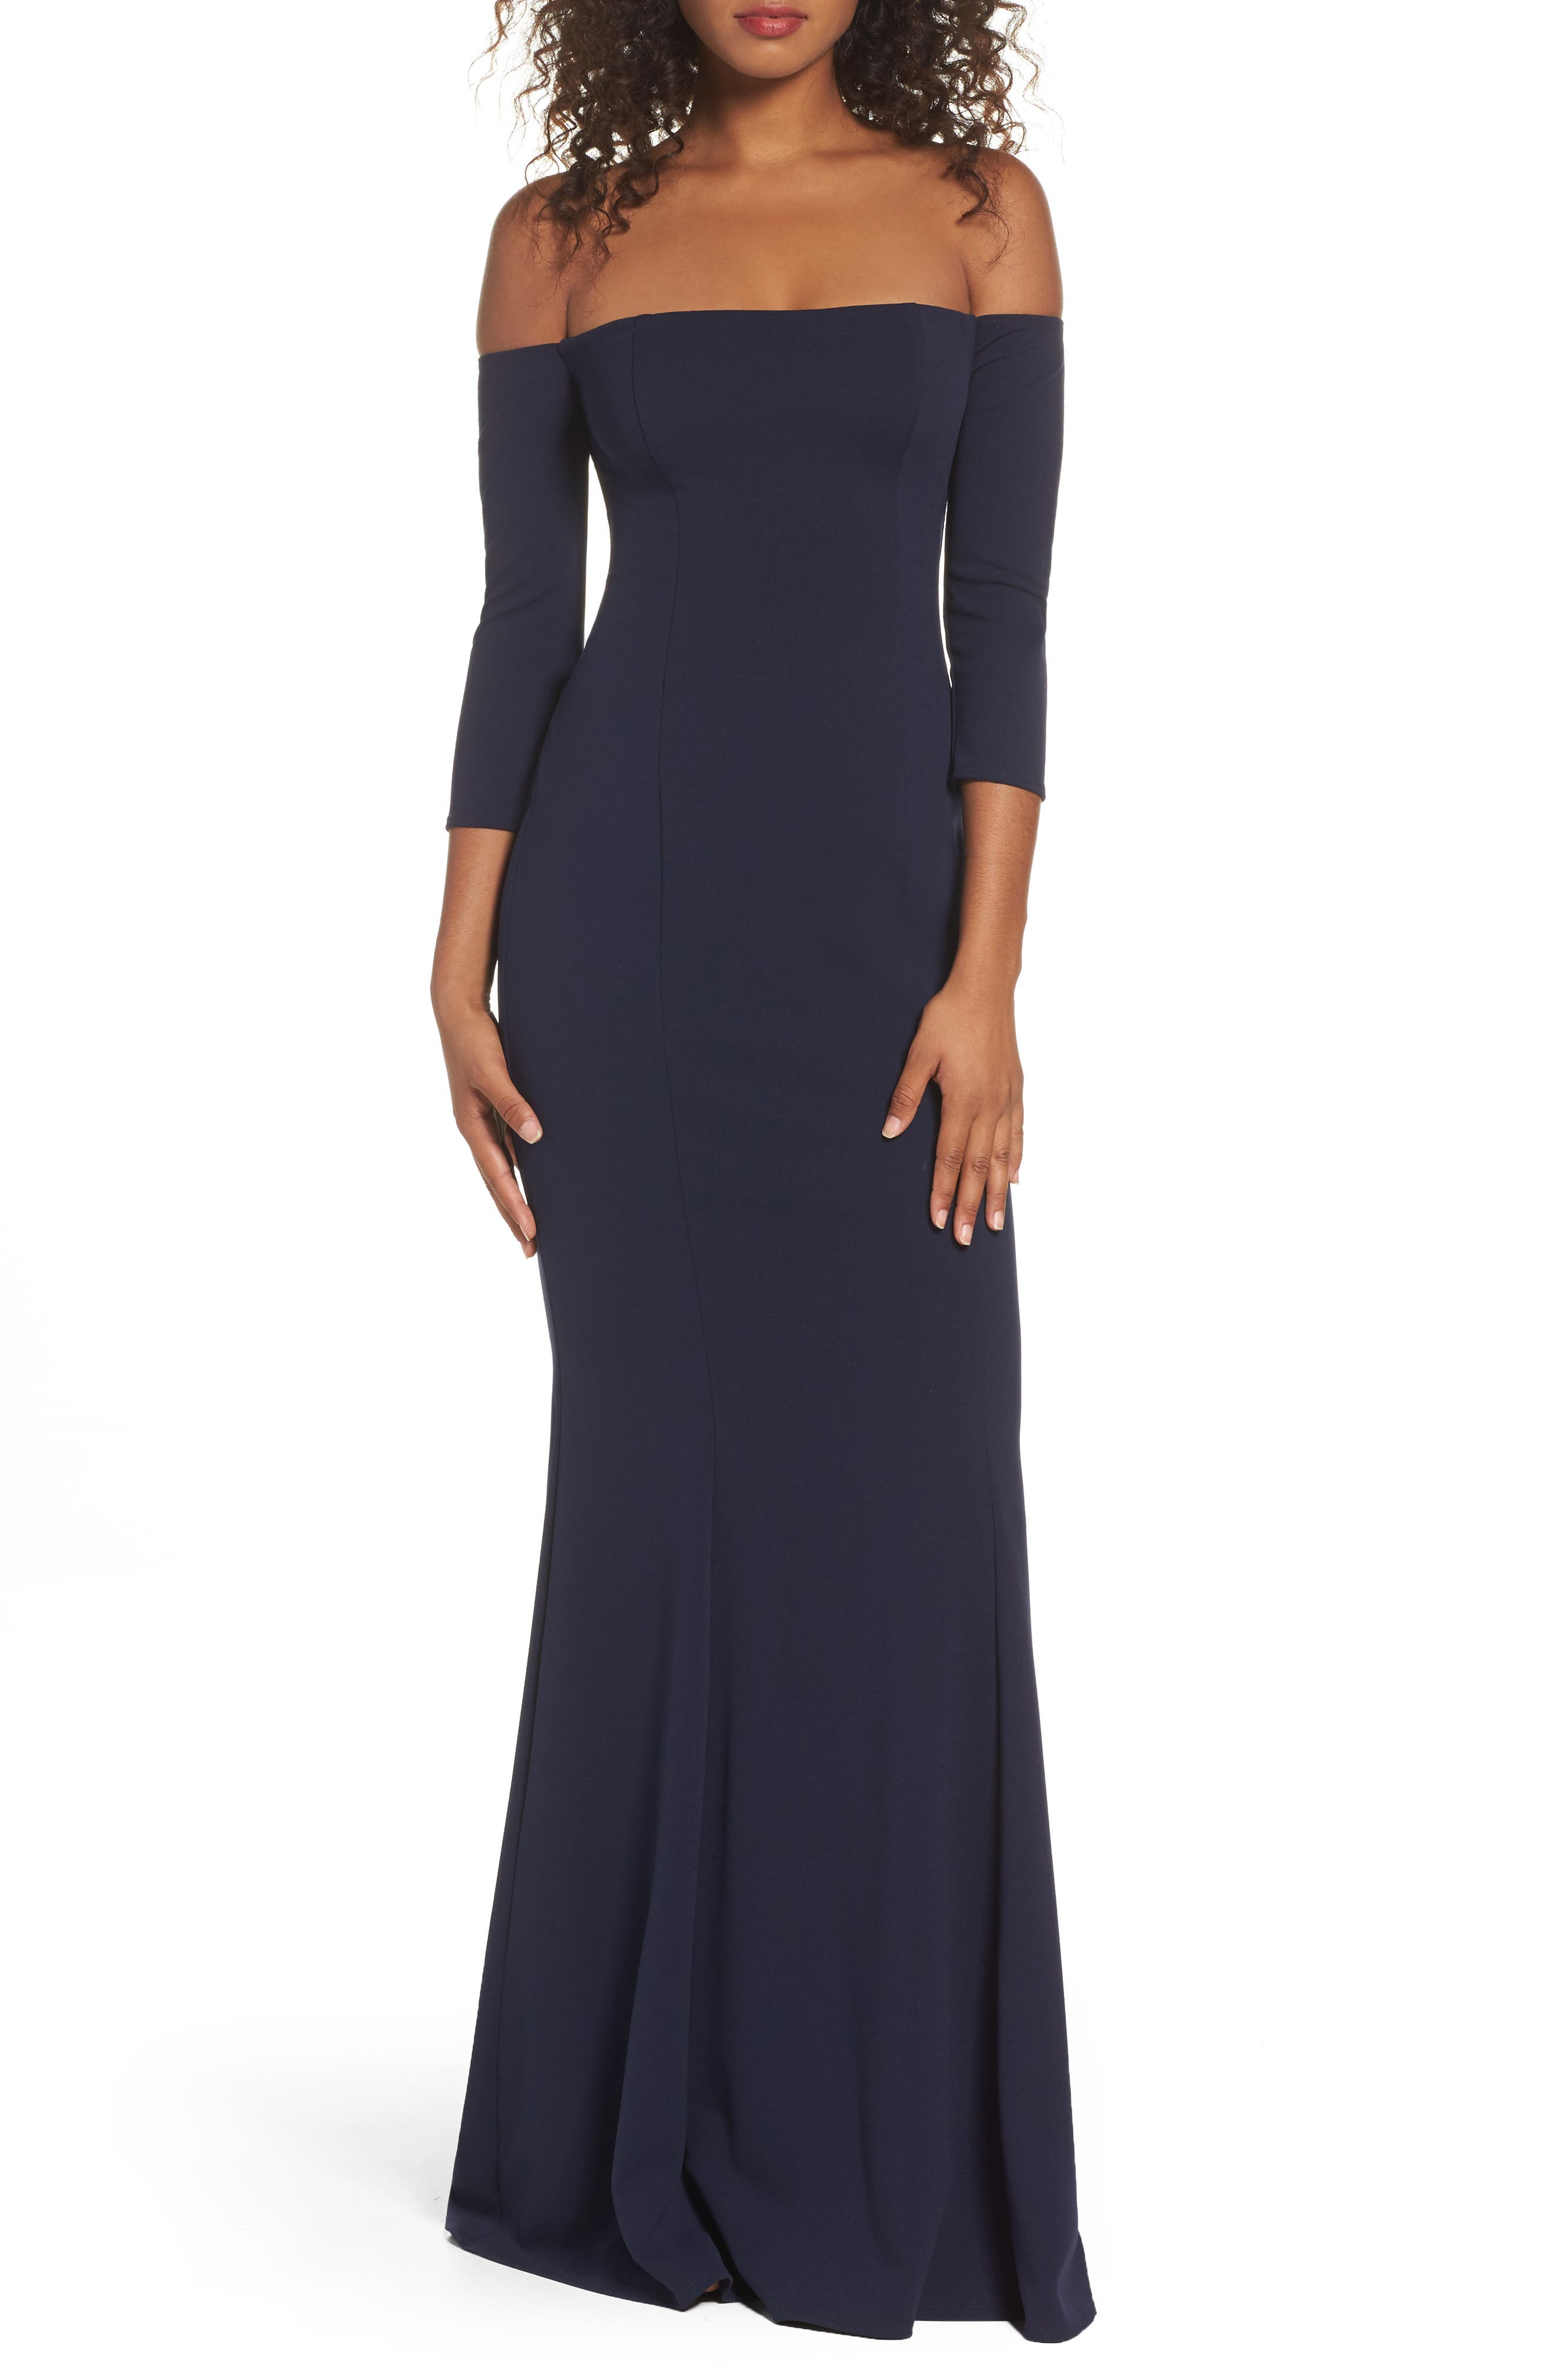 Brentwood Three-Quarter Sleeve Off the Shoulder Gown,                         Main,                         color, NAVY